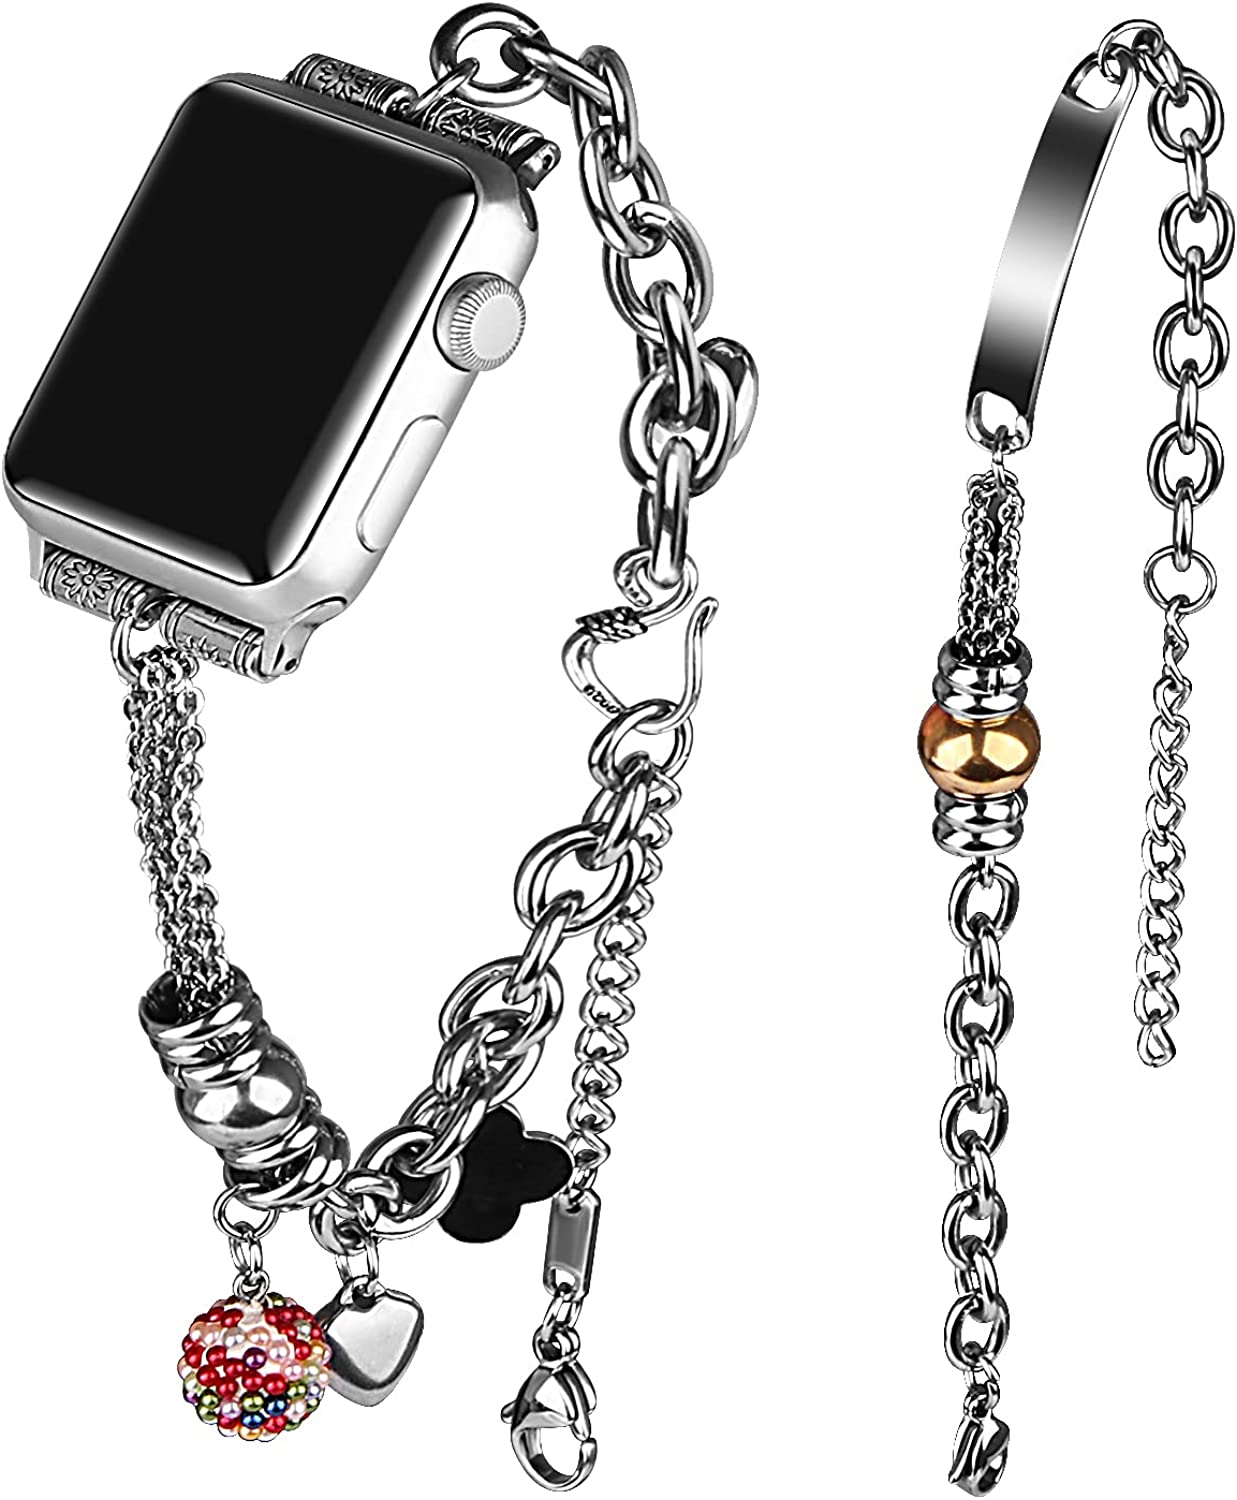 VIIVY VIYIV Bling Bands Compatible with Apple Watch Band 38mm 40mm 42mm 44mm Iwatch SE Series 6/5/4/3/2/1, Women's Rhinestone Charms Strap Double Tour Chain Bracelet Wristband Stainless Steel